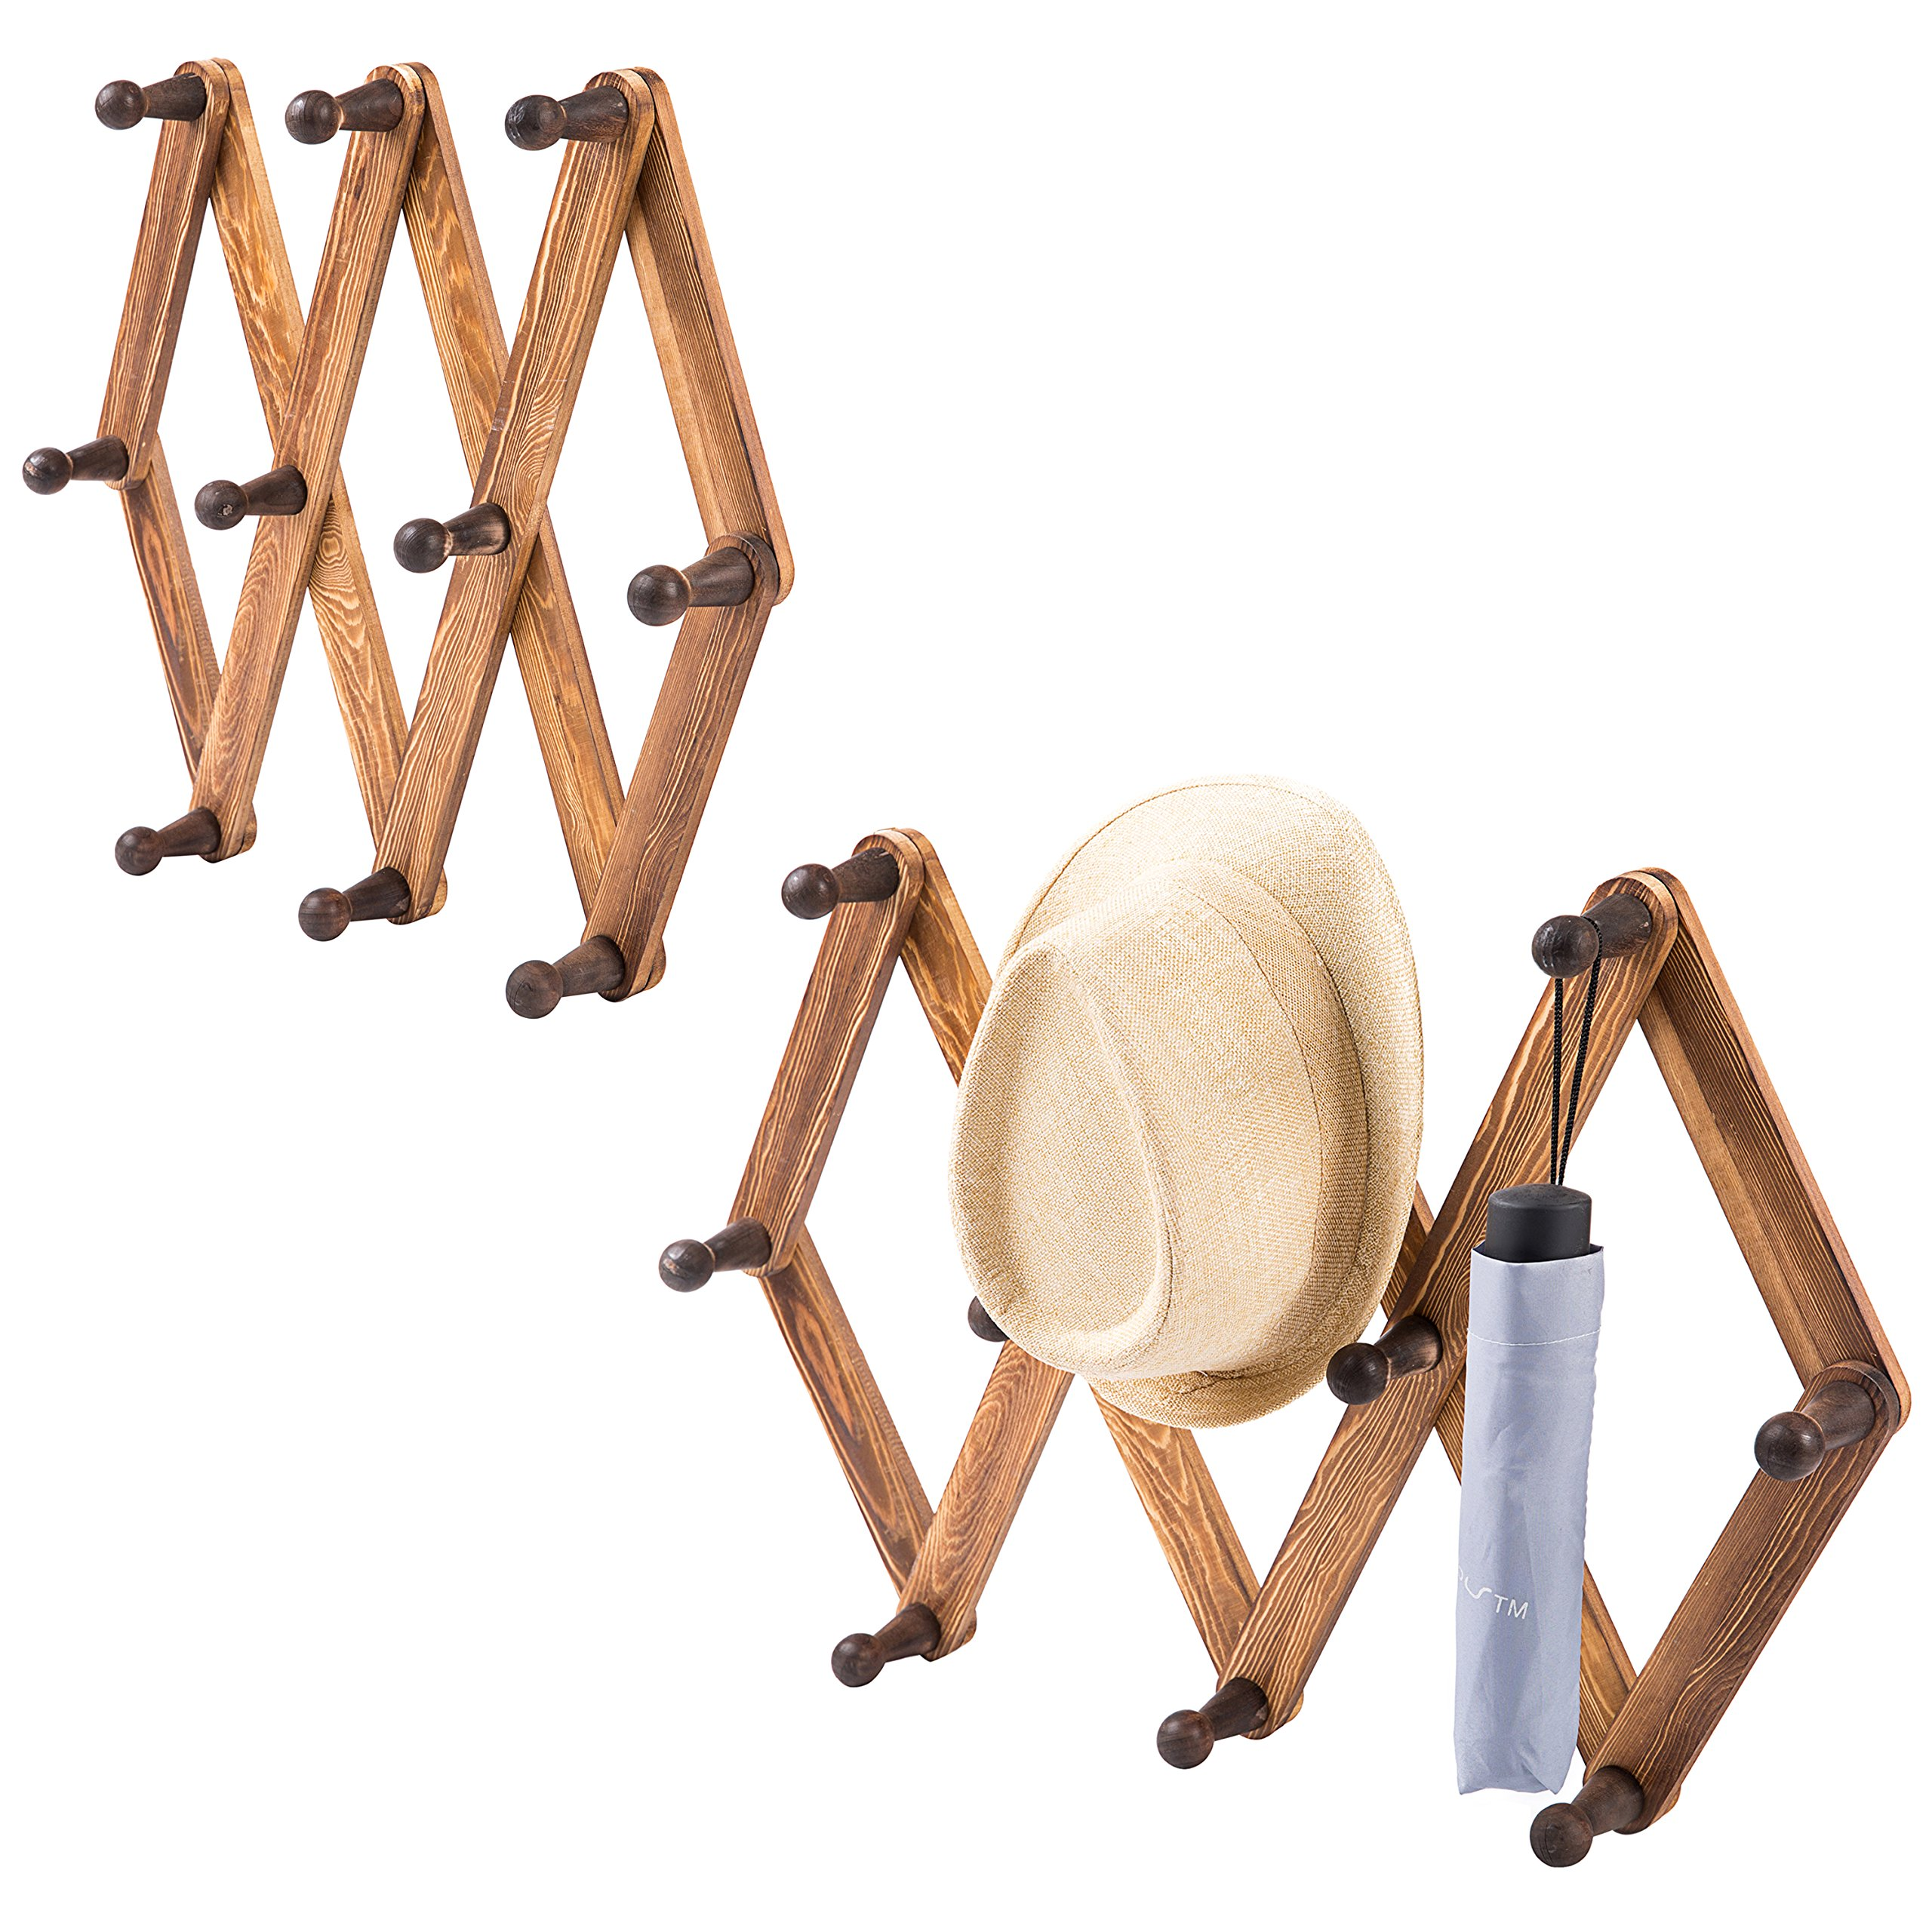 10 Hook Torched Wood Wall Mounted Expandable Accordion Peg Coat Rack Hanger, Set of 2